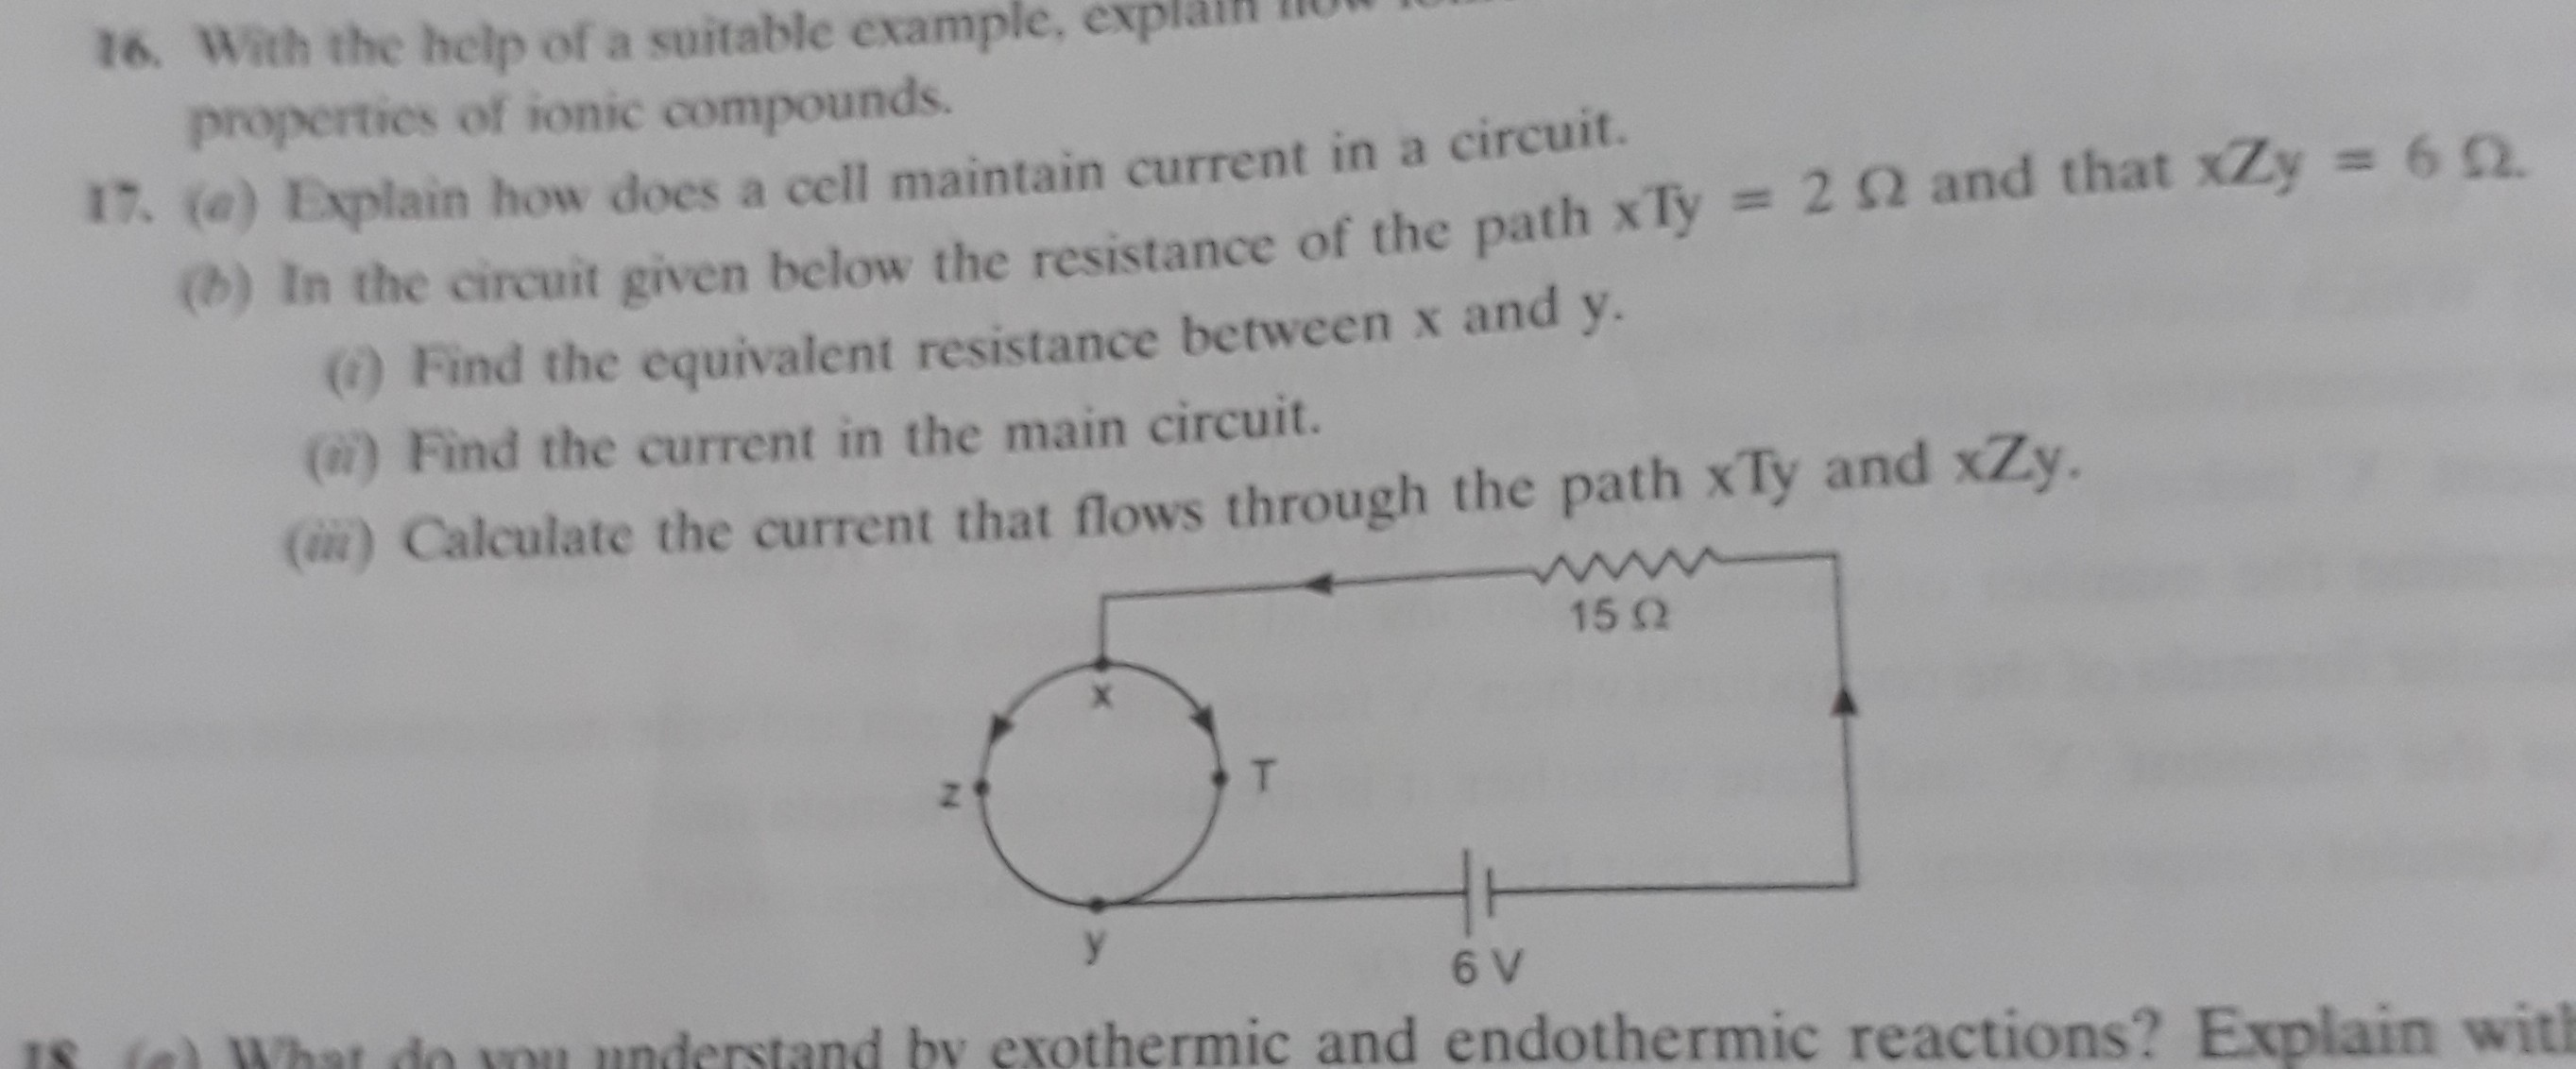 17th Question Plz Ans Fast Equivalent Resistance Circuit Examples